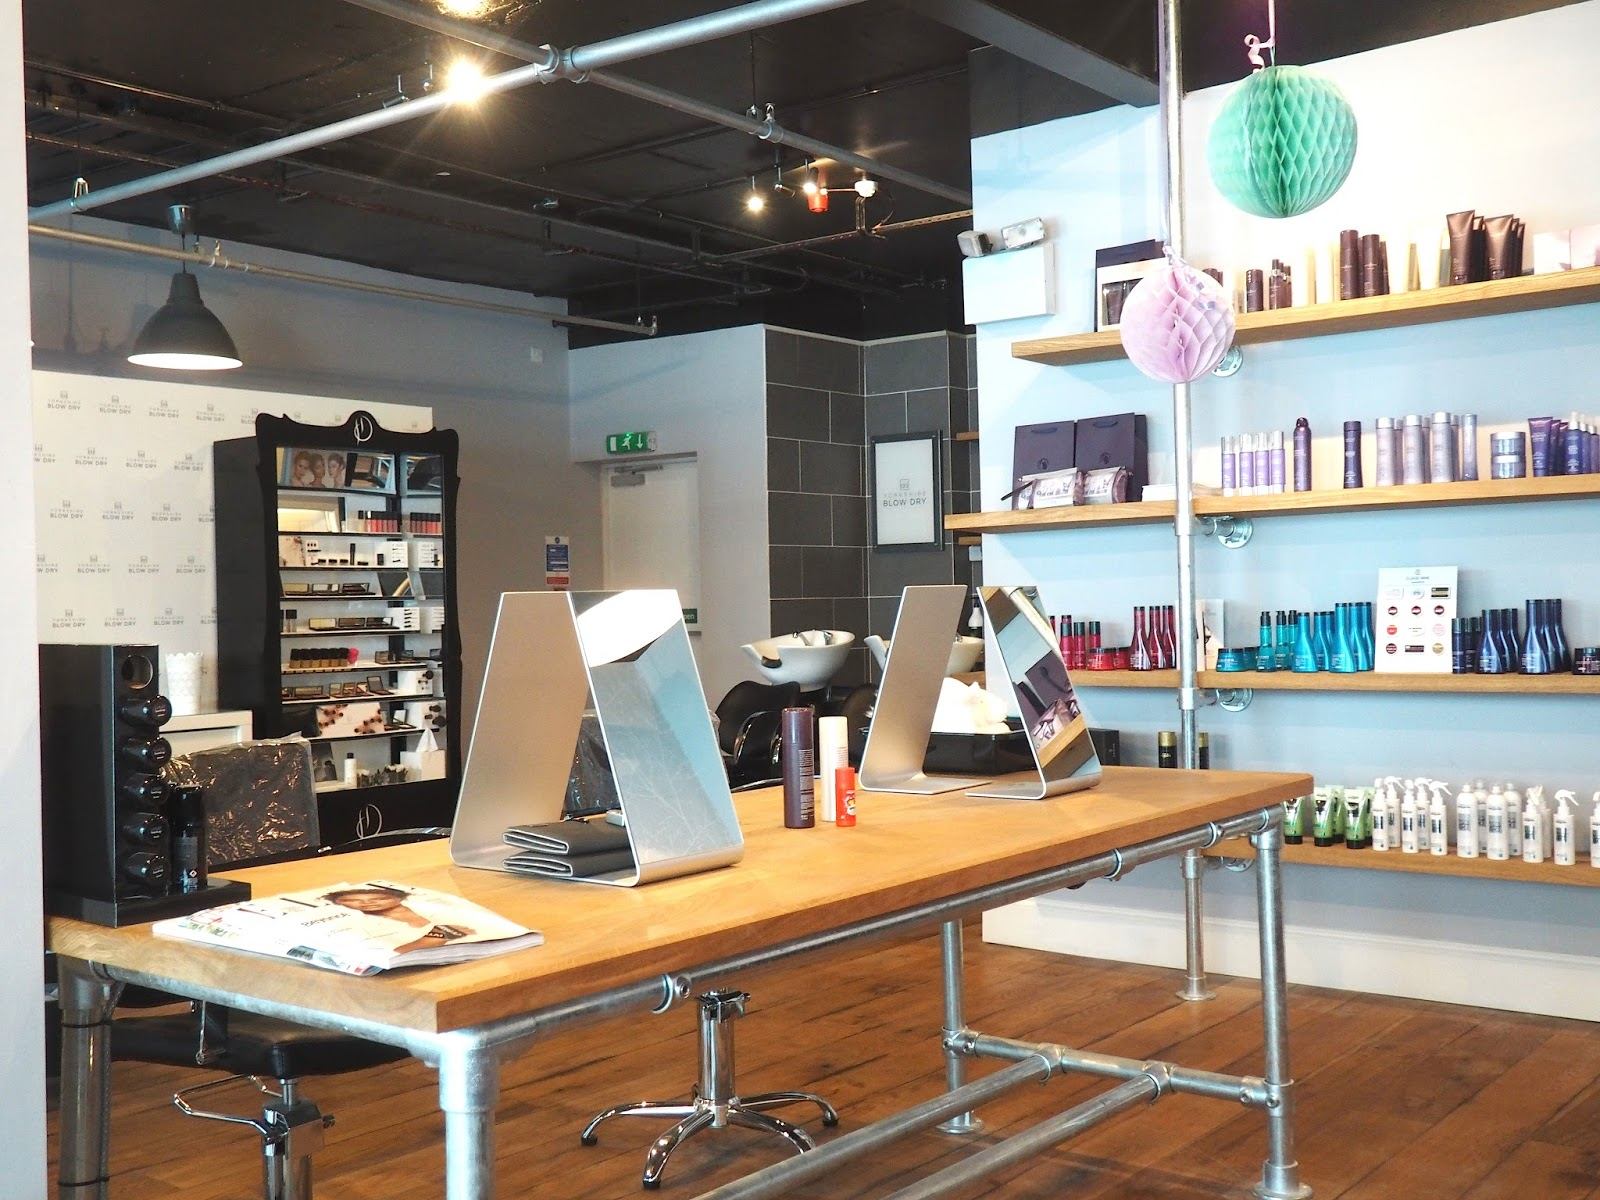 Yorkshire Dry Is The A Newly Opened Salon In Leeds City Centre And Last Week I Was Invited Around To Check Out Services